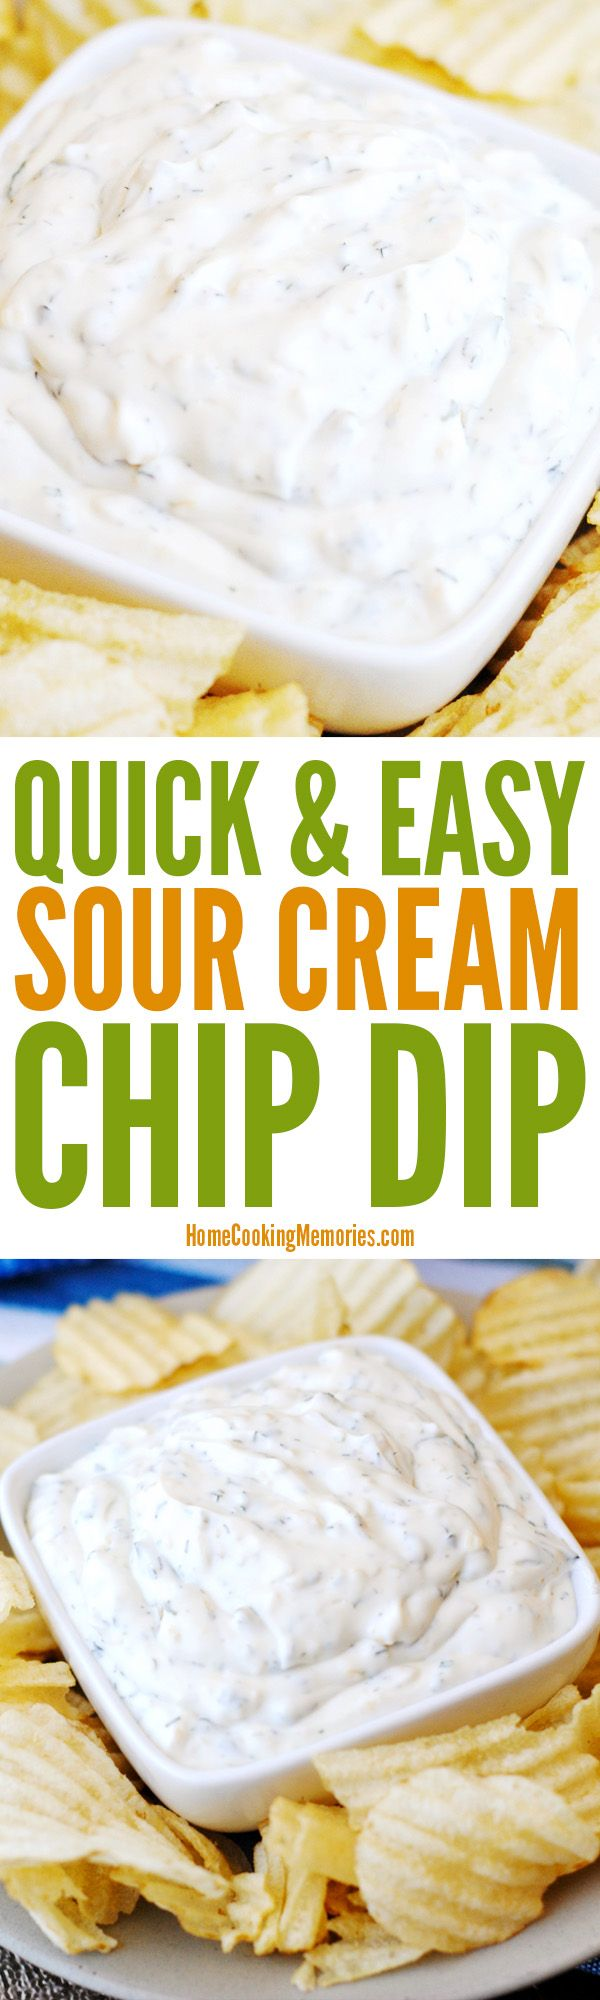 Homemade Sour Cream Chip Dip Recipe Chip Dip Recipes Sour Cream Chips Sour Cream Chip Dip